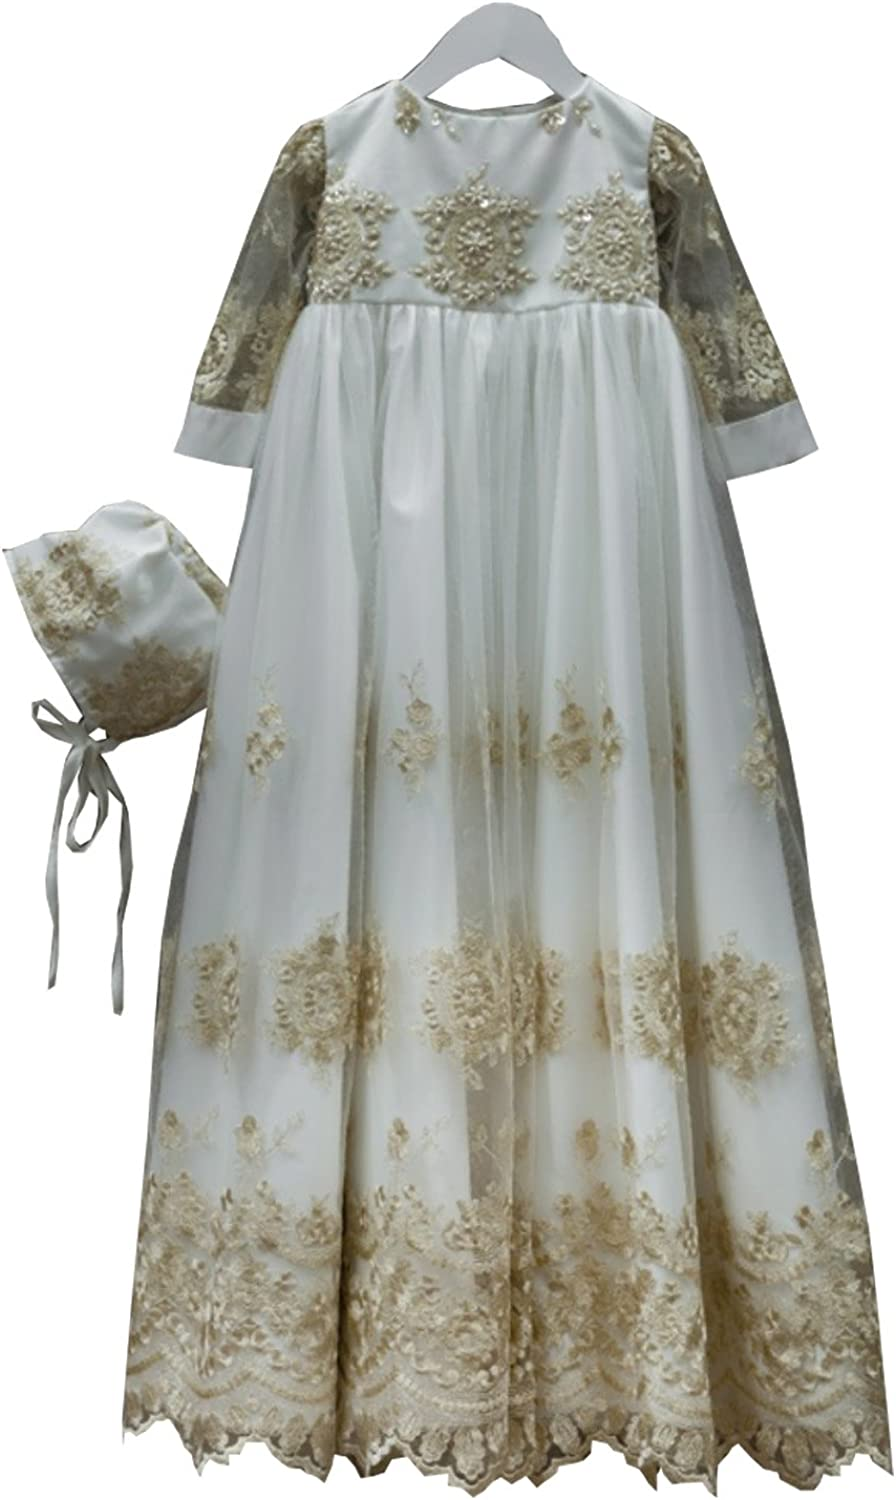 Kelaixiang Jewel Short Sleeve Gold Satin Baptism Gown For Baby Lace with Bonnet